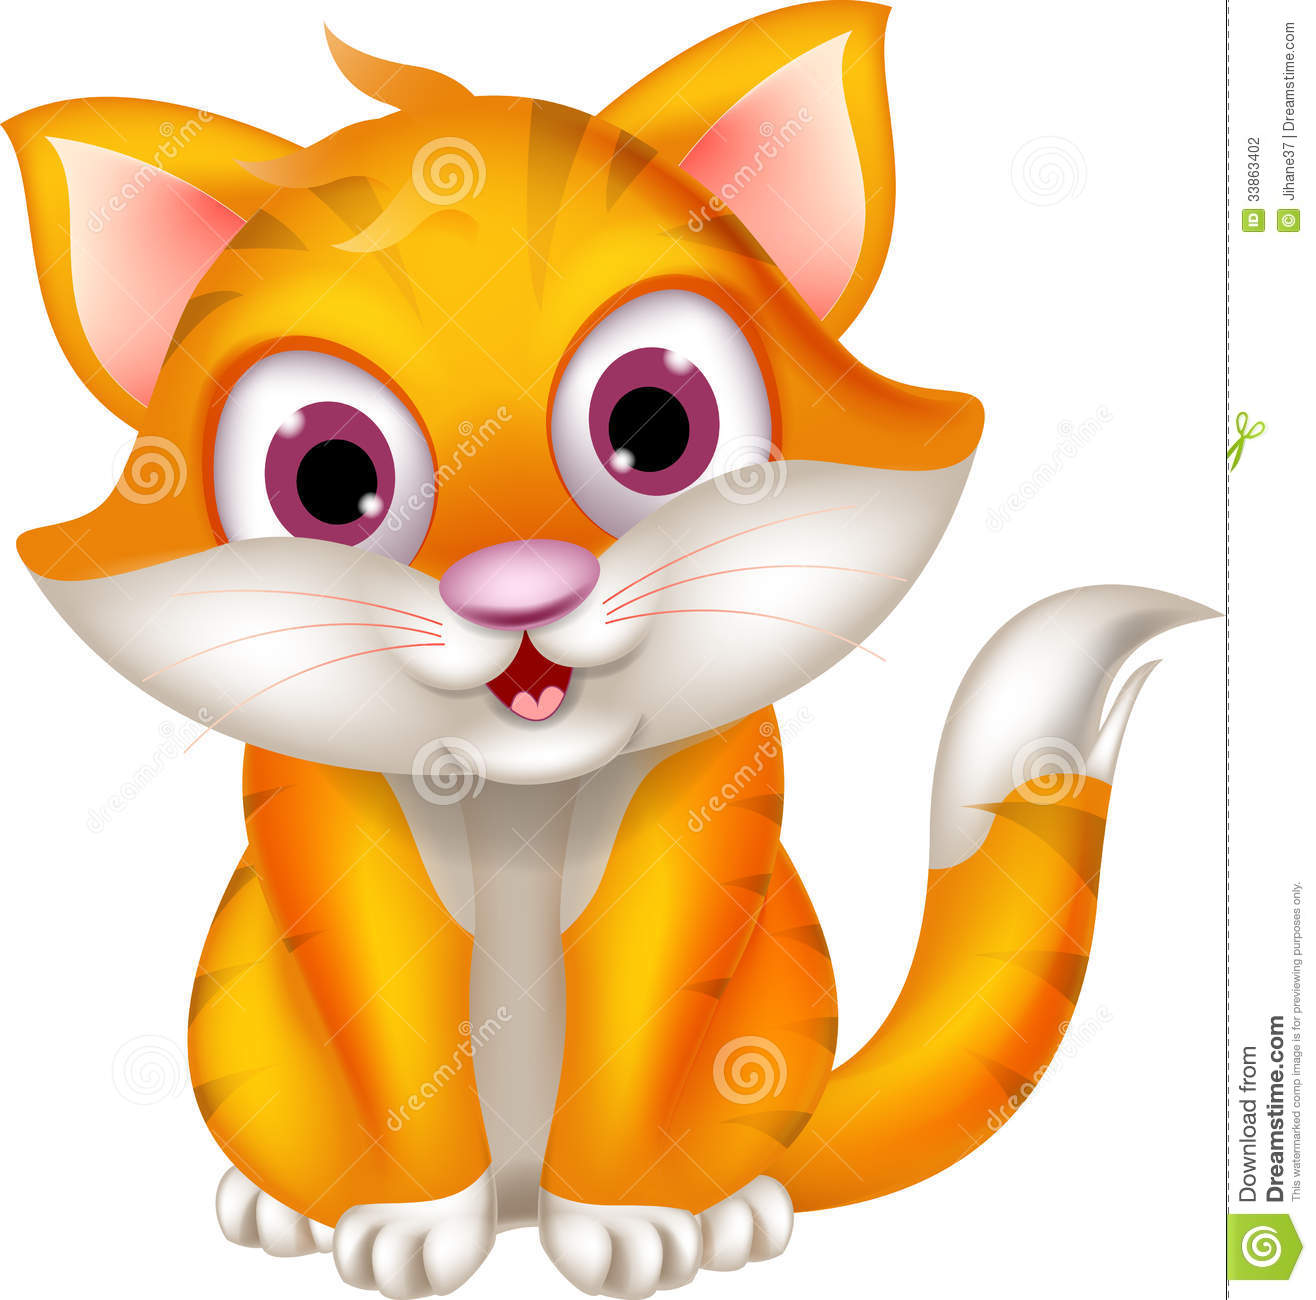 Cute Cats And Kittens Wallpaper Hd Cat Themes Cute Cat Cartoon Sitting Stock Photography Image 33863402